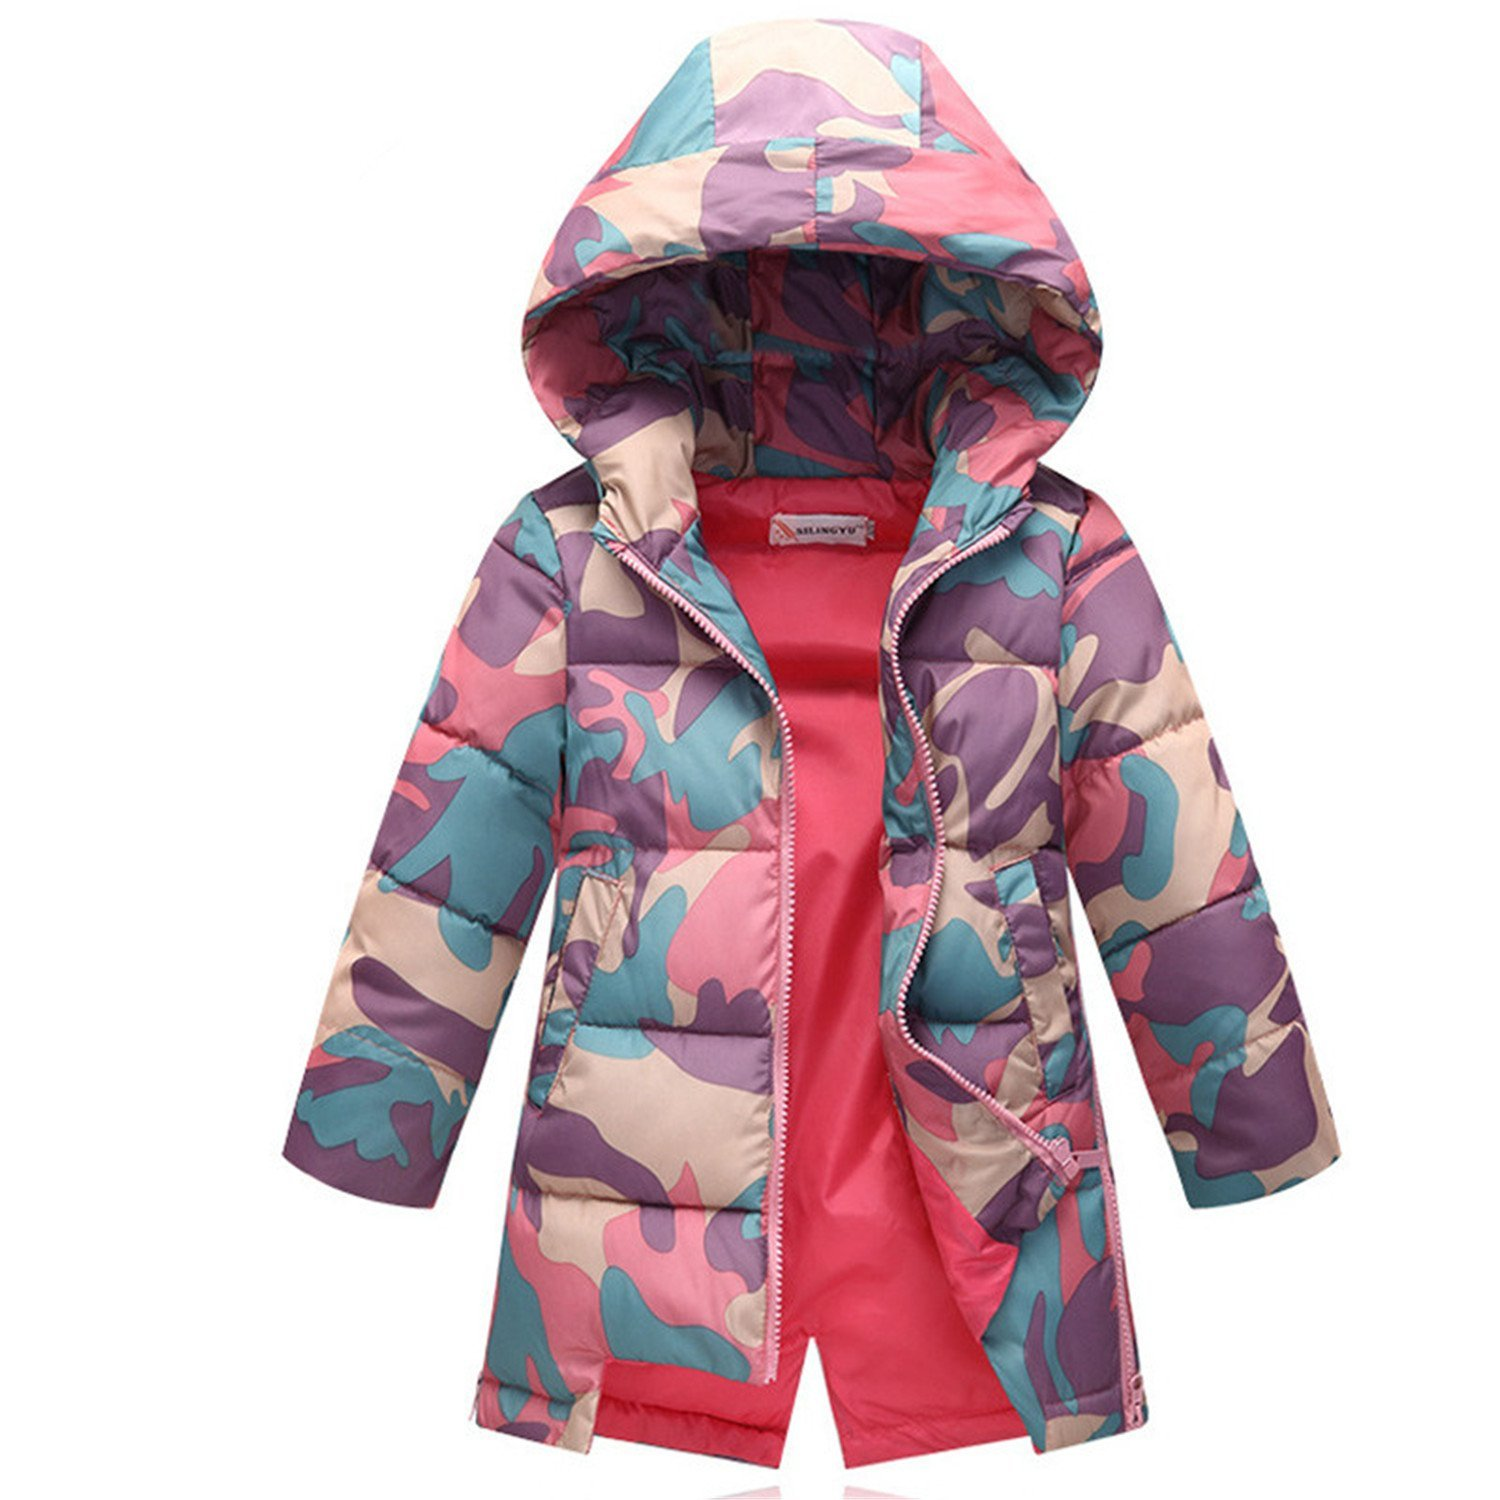 Baqijian Girls Parka Winter Coat Fur Kids Coat Baby Feather Parkas Teenagers Printing Camouflage Coat 5-12 T